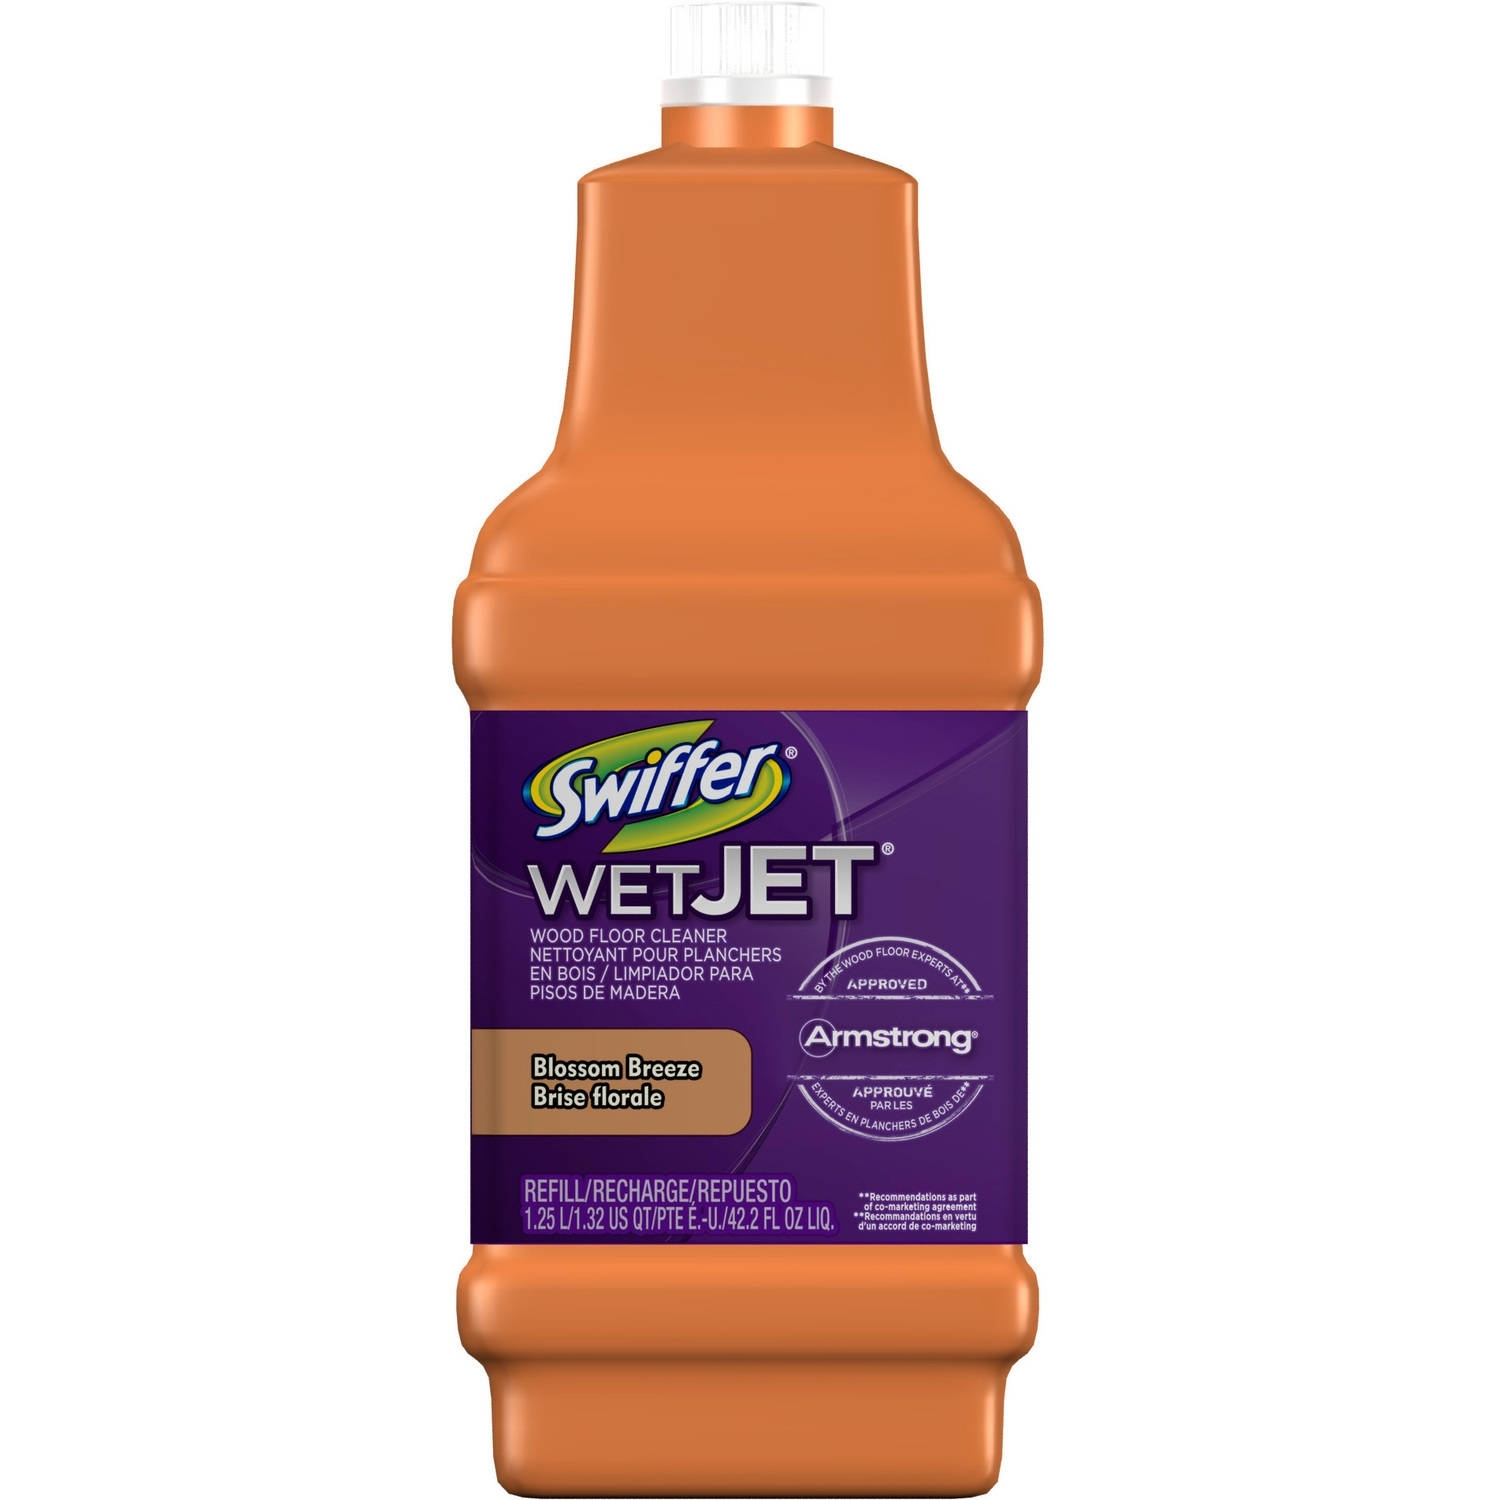 Permalink to Swiffer Wetjet For Laminate Wood Floors